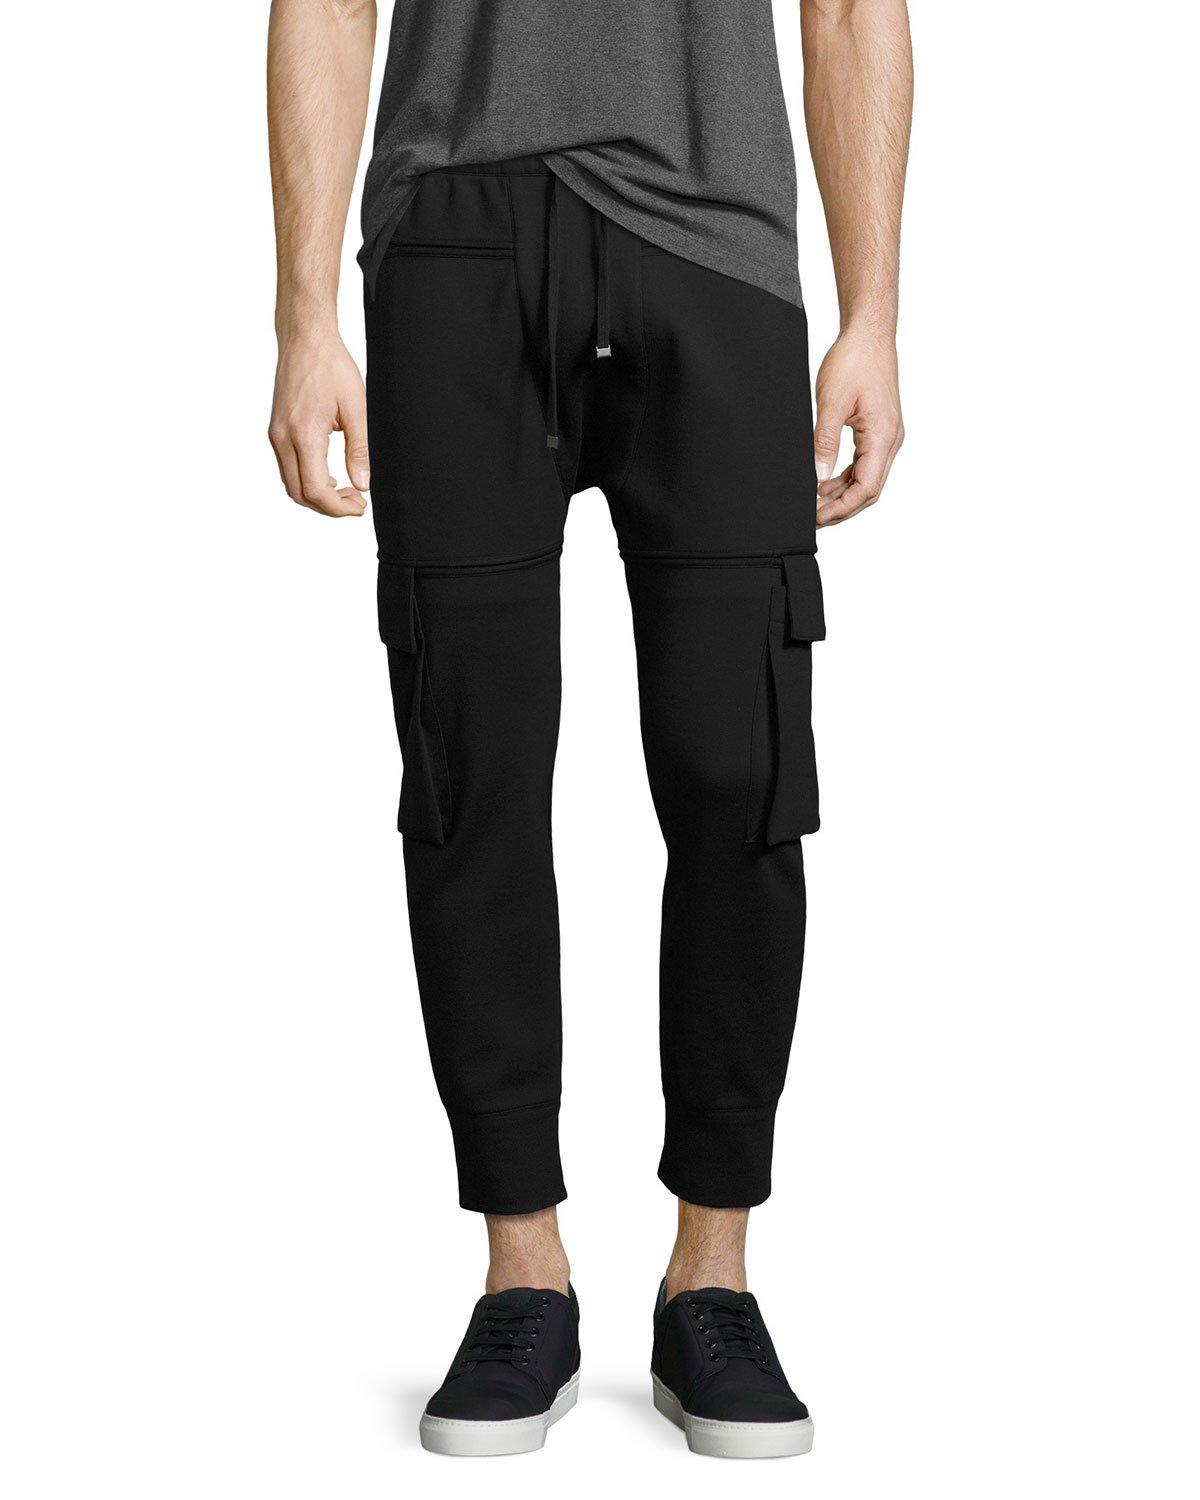 Mens Pants: Every Man Needs a Nice Pair. More important than any type of style is the fit of your men's pants. Sure, you can choose from cargo, khaki, or chino pants, but if the pants don't fit right, you aren't going to enjoy any of them.